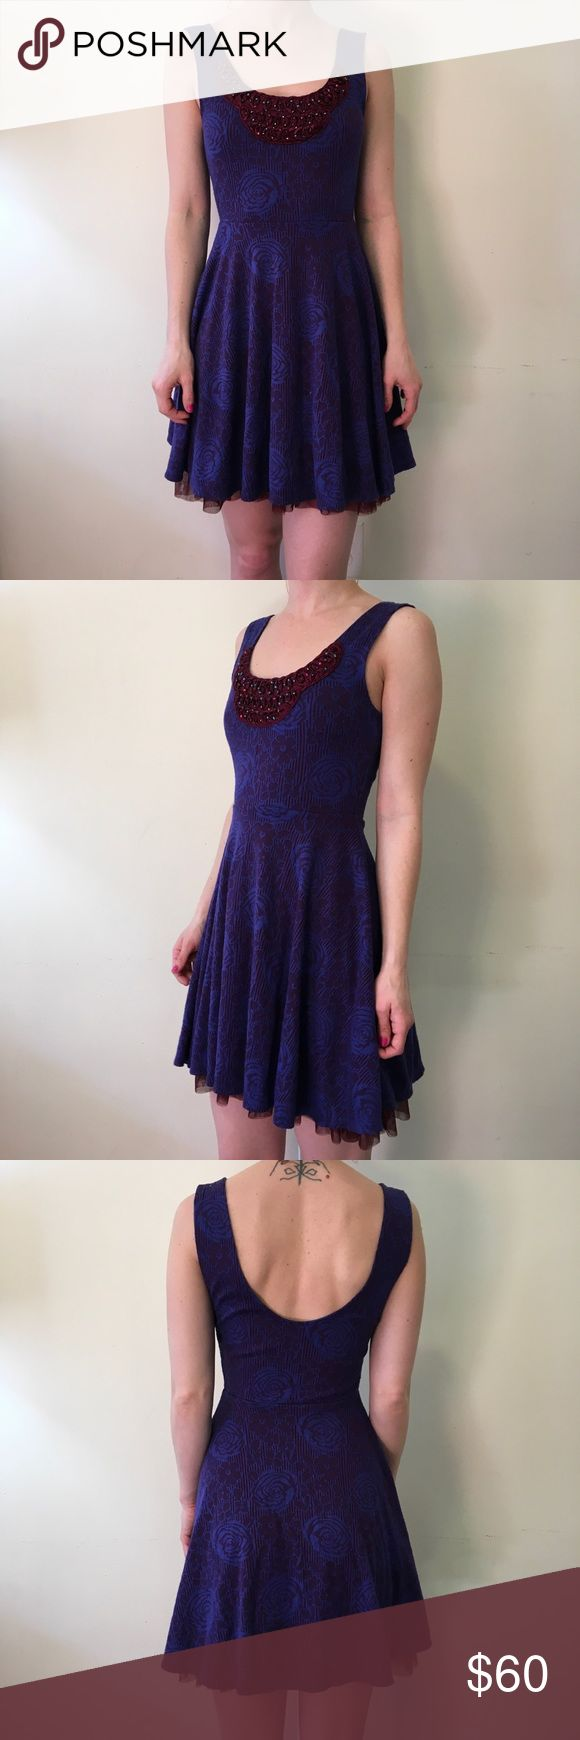 Free People Purple Red Skater Sleeveless Dress Free People Dress with a red and blue purple body that has Tulle underneath and is stretchy material! Super cute and unique- in good used condition! Free People Dresses